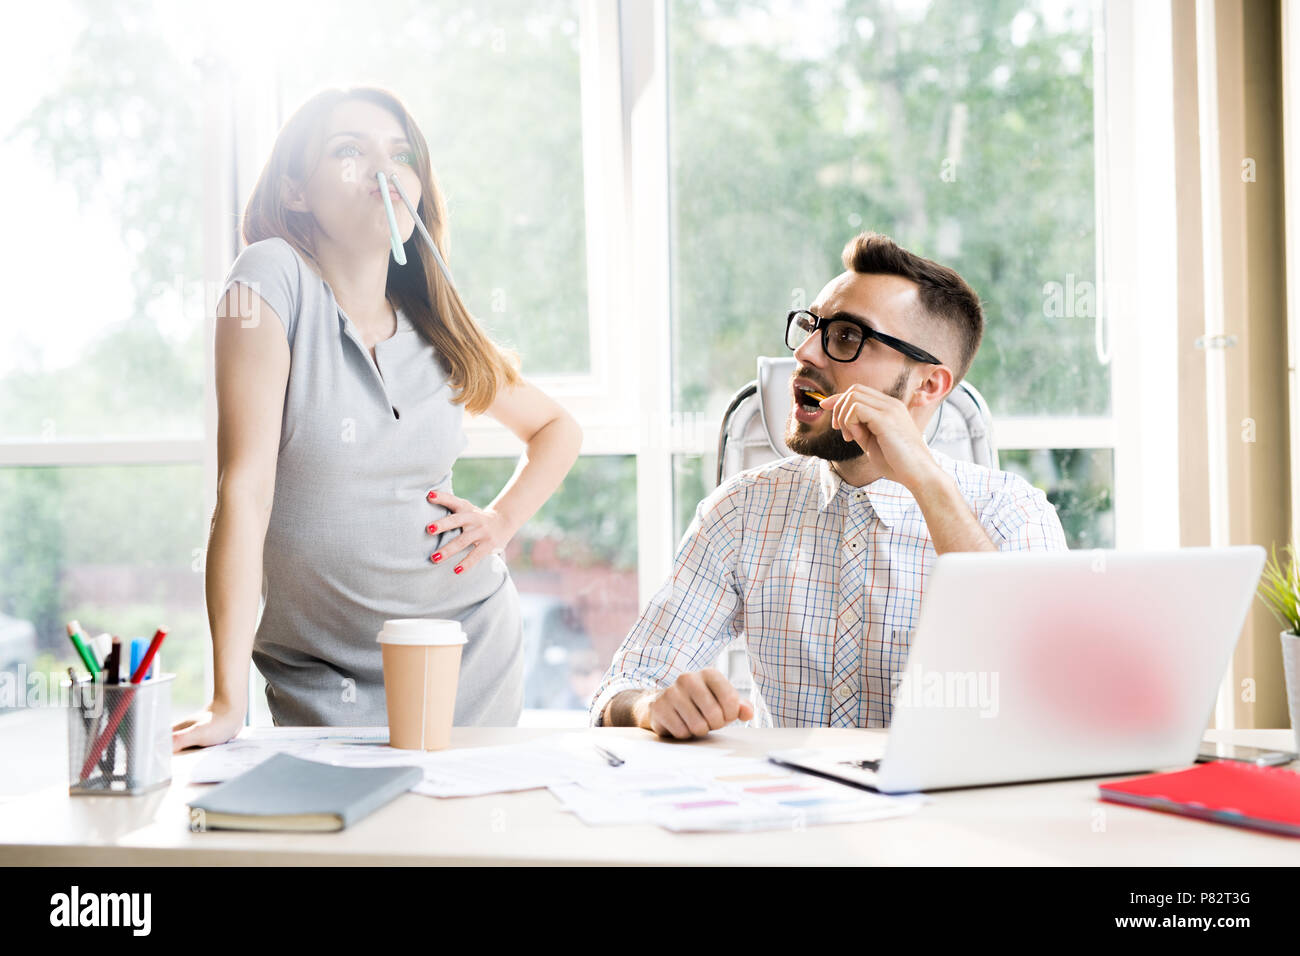 Business People in Office Photo Stock